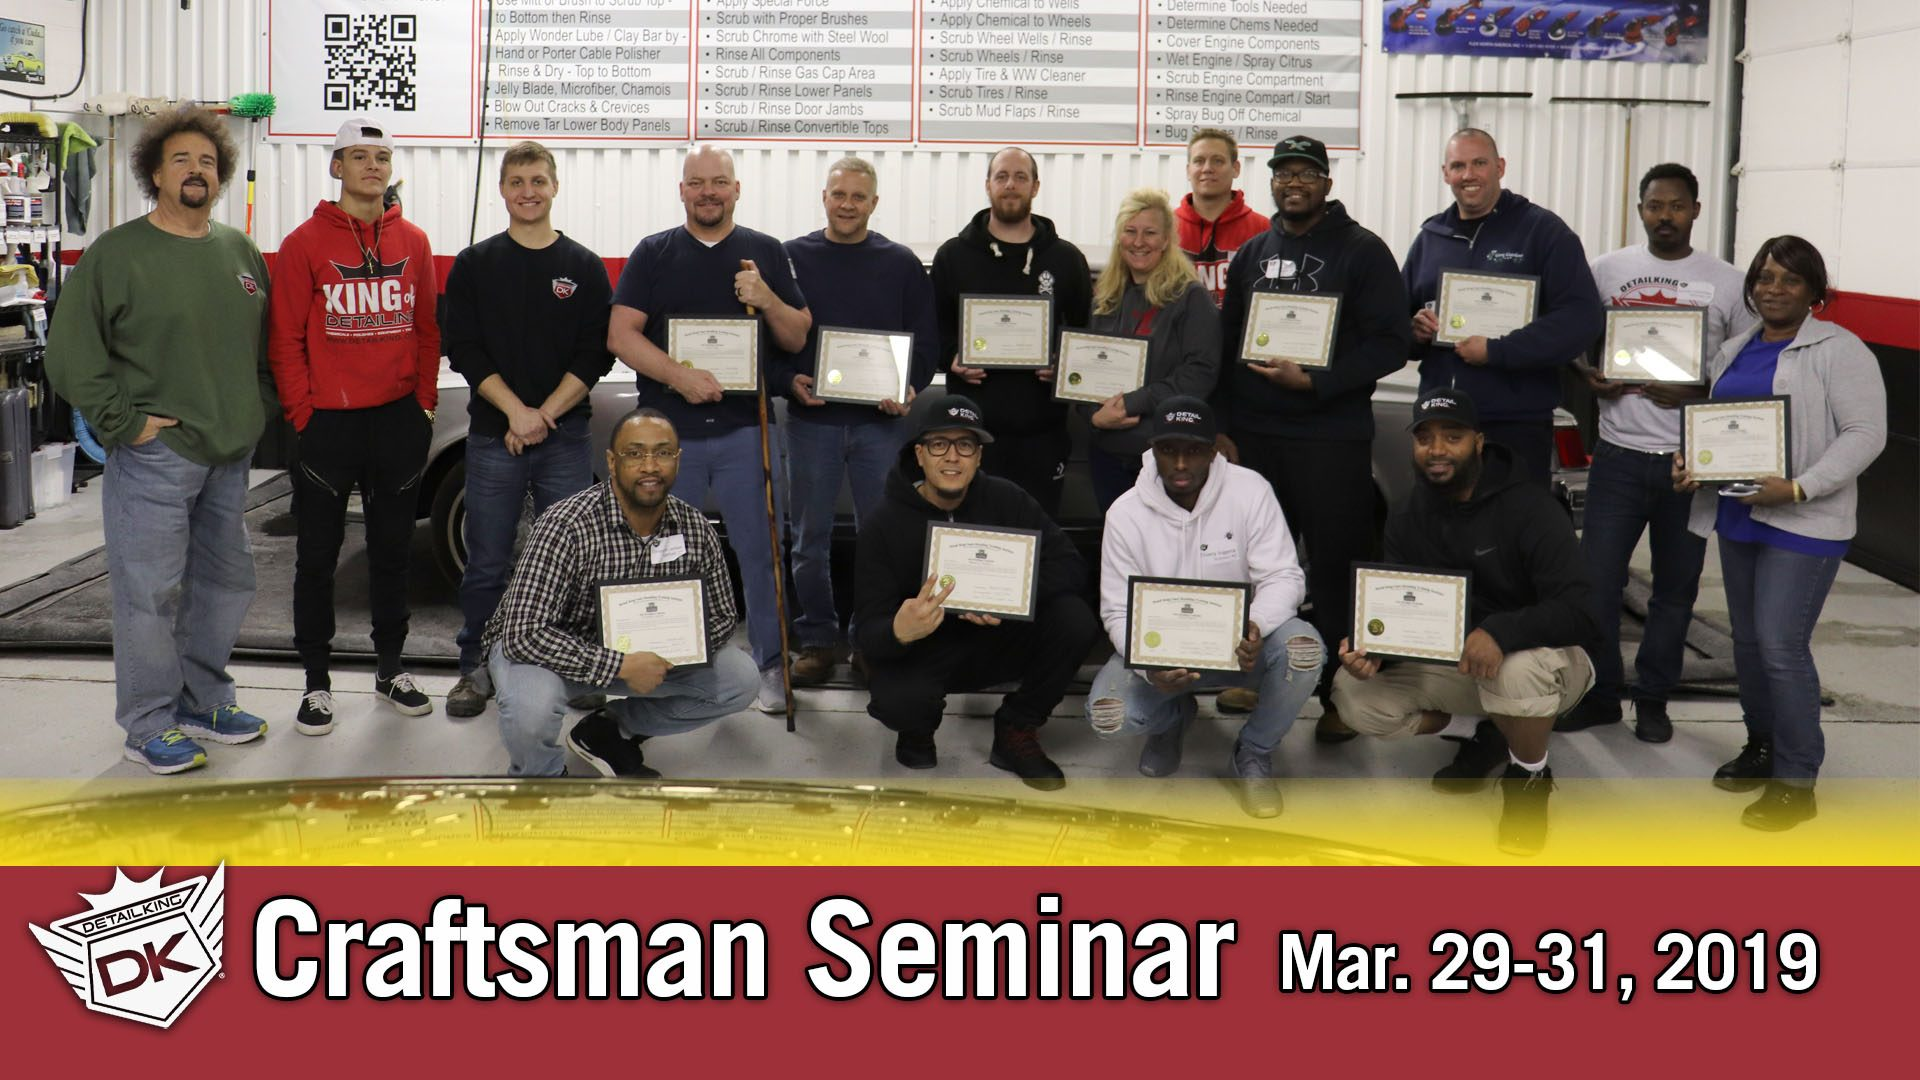 March 29th – 31st 2019 Craftsman Auto Detailing Training Seminar